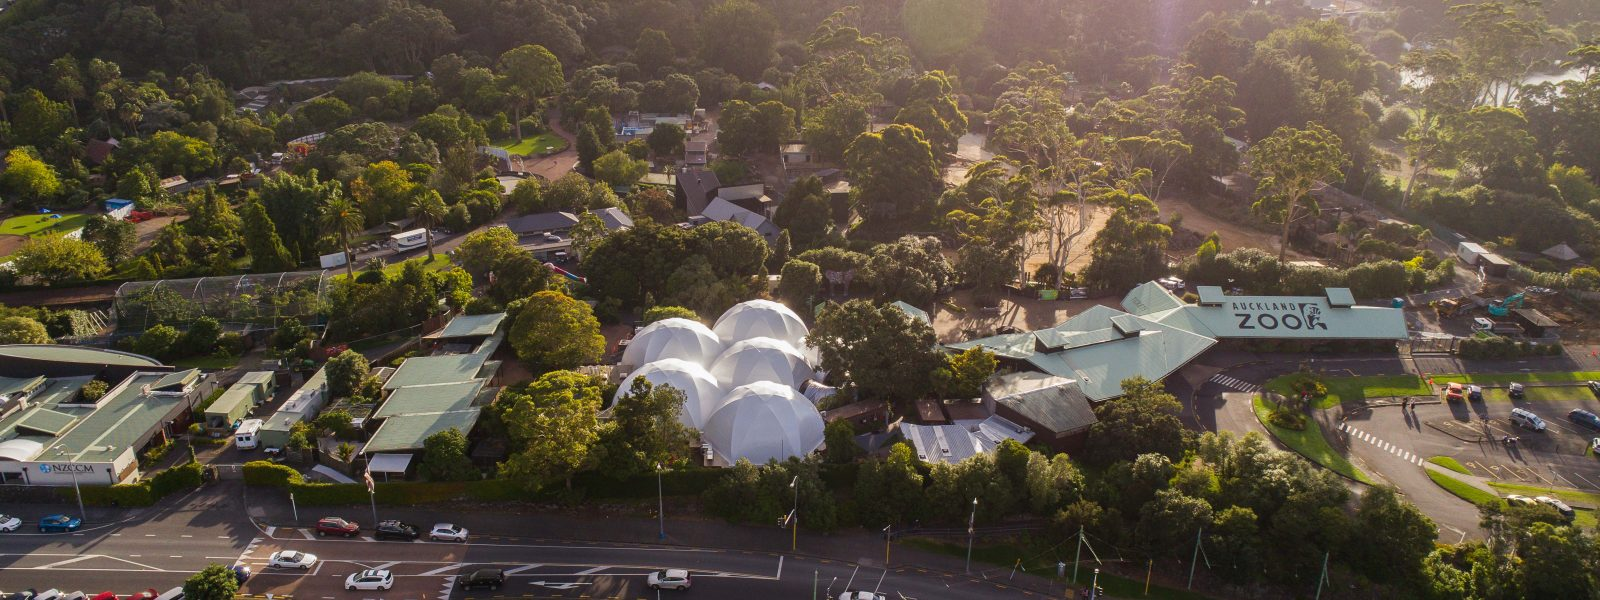 BUG LAB – AUCKLAND ZOO - Skyview